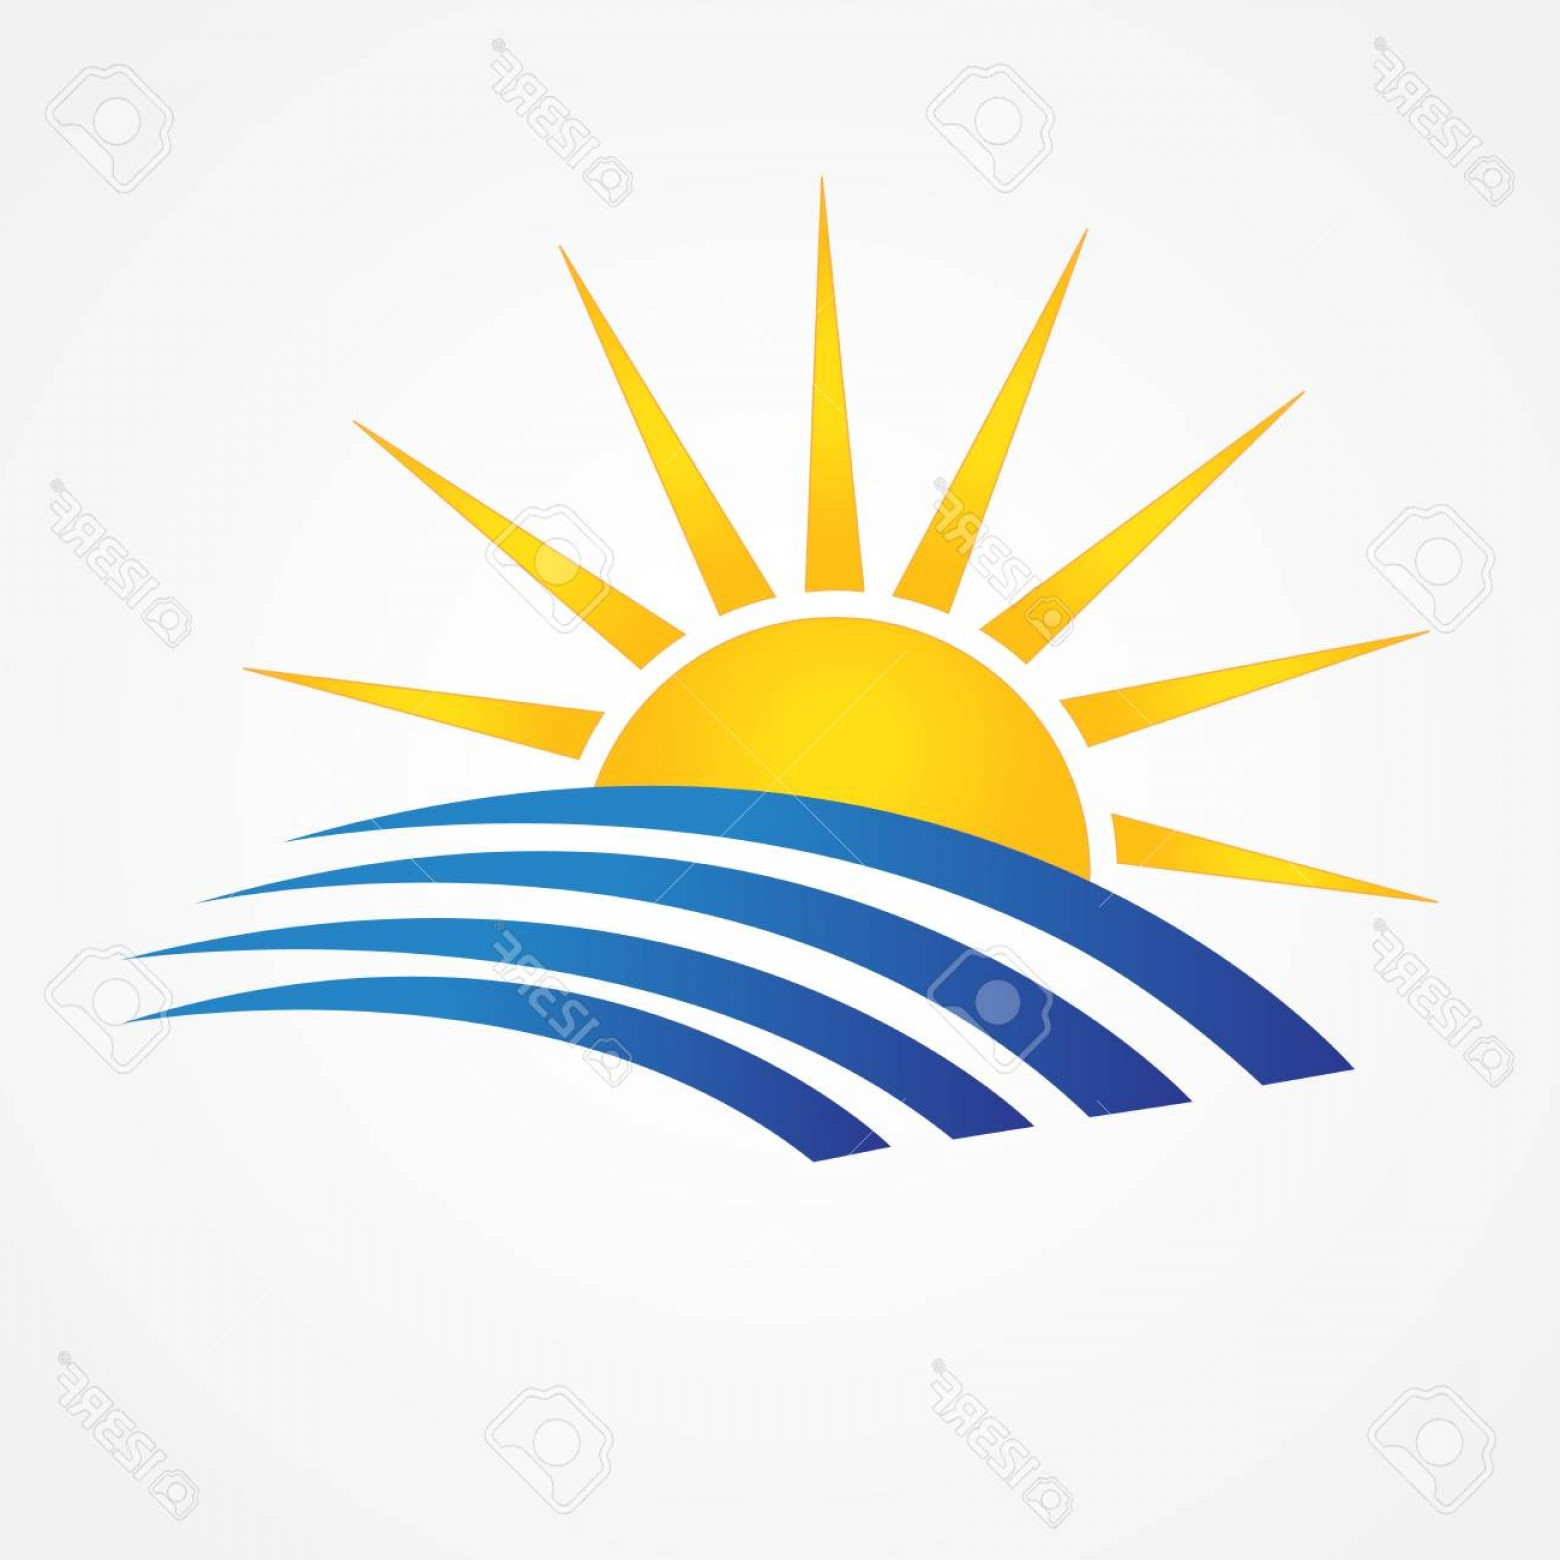 Vector Swoosh Simple Two Line: Photostock Vector Sun With Beach Swooshes Line Art Blue Ocean Water Id Business Brand Icon